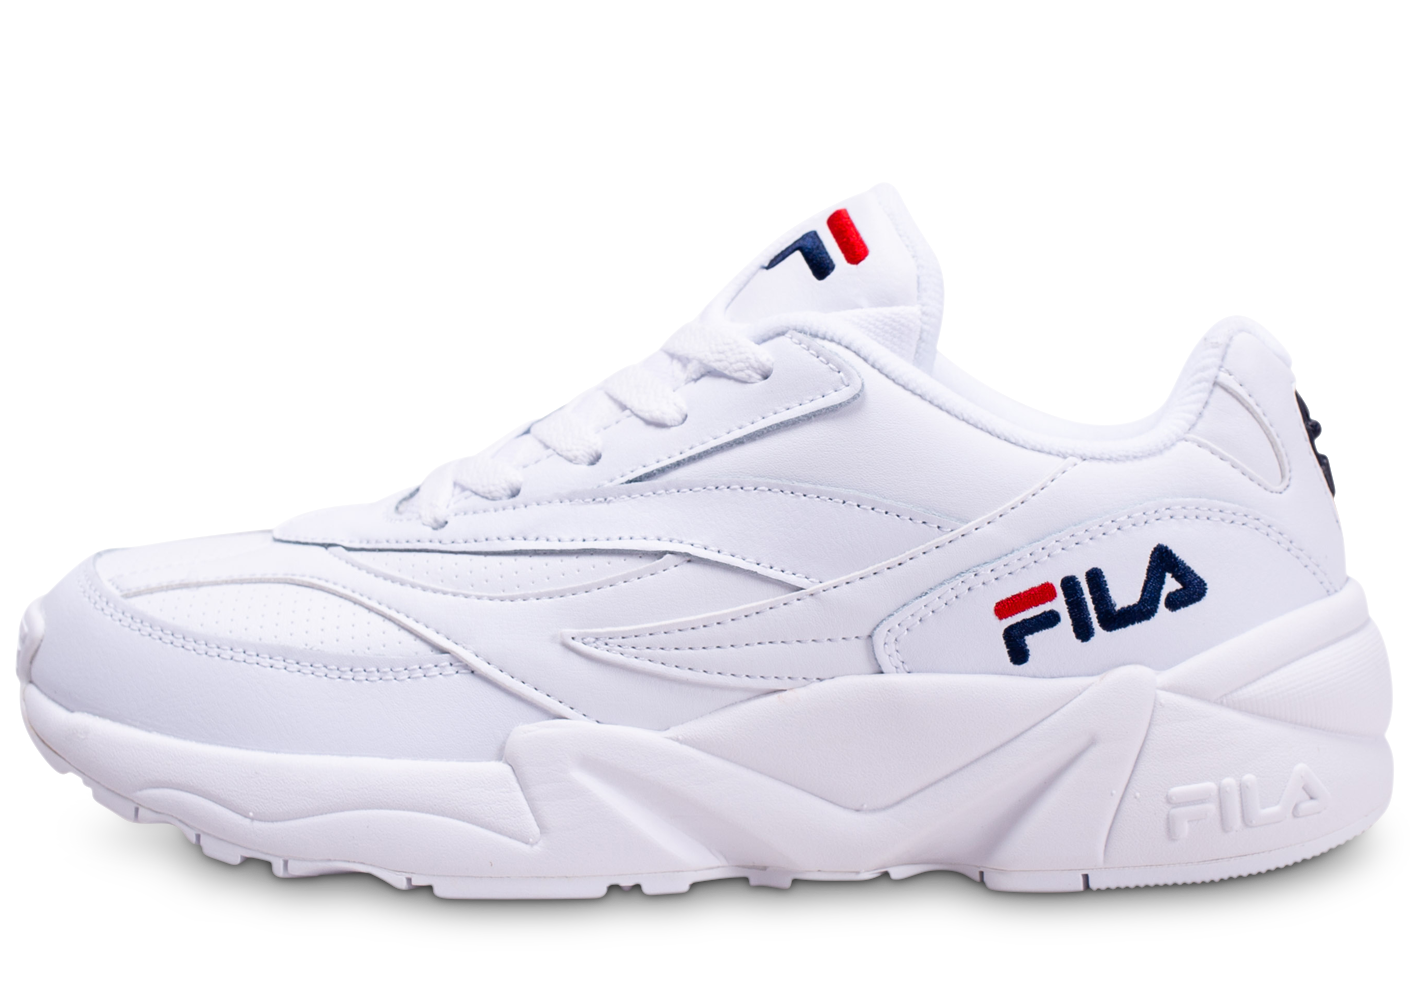 Fila homme v94m low blanche baskets